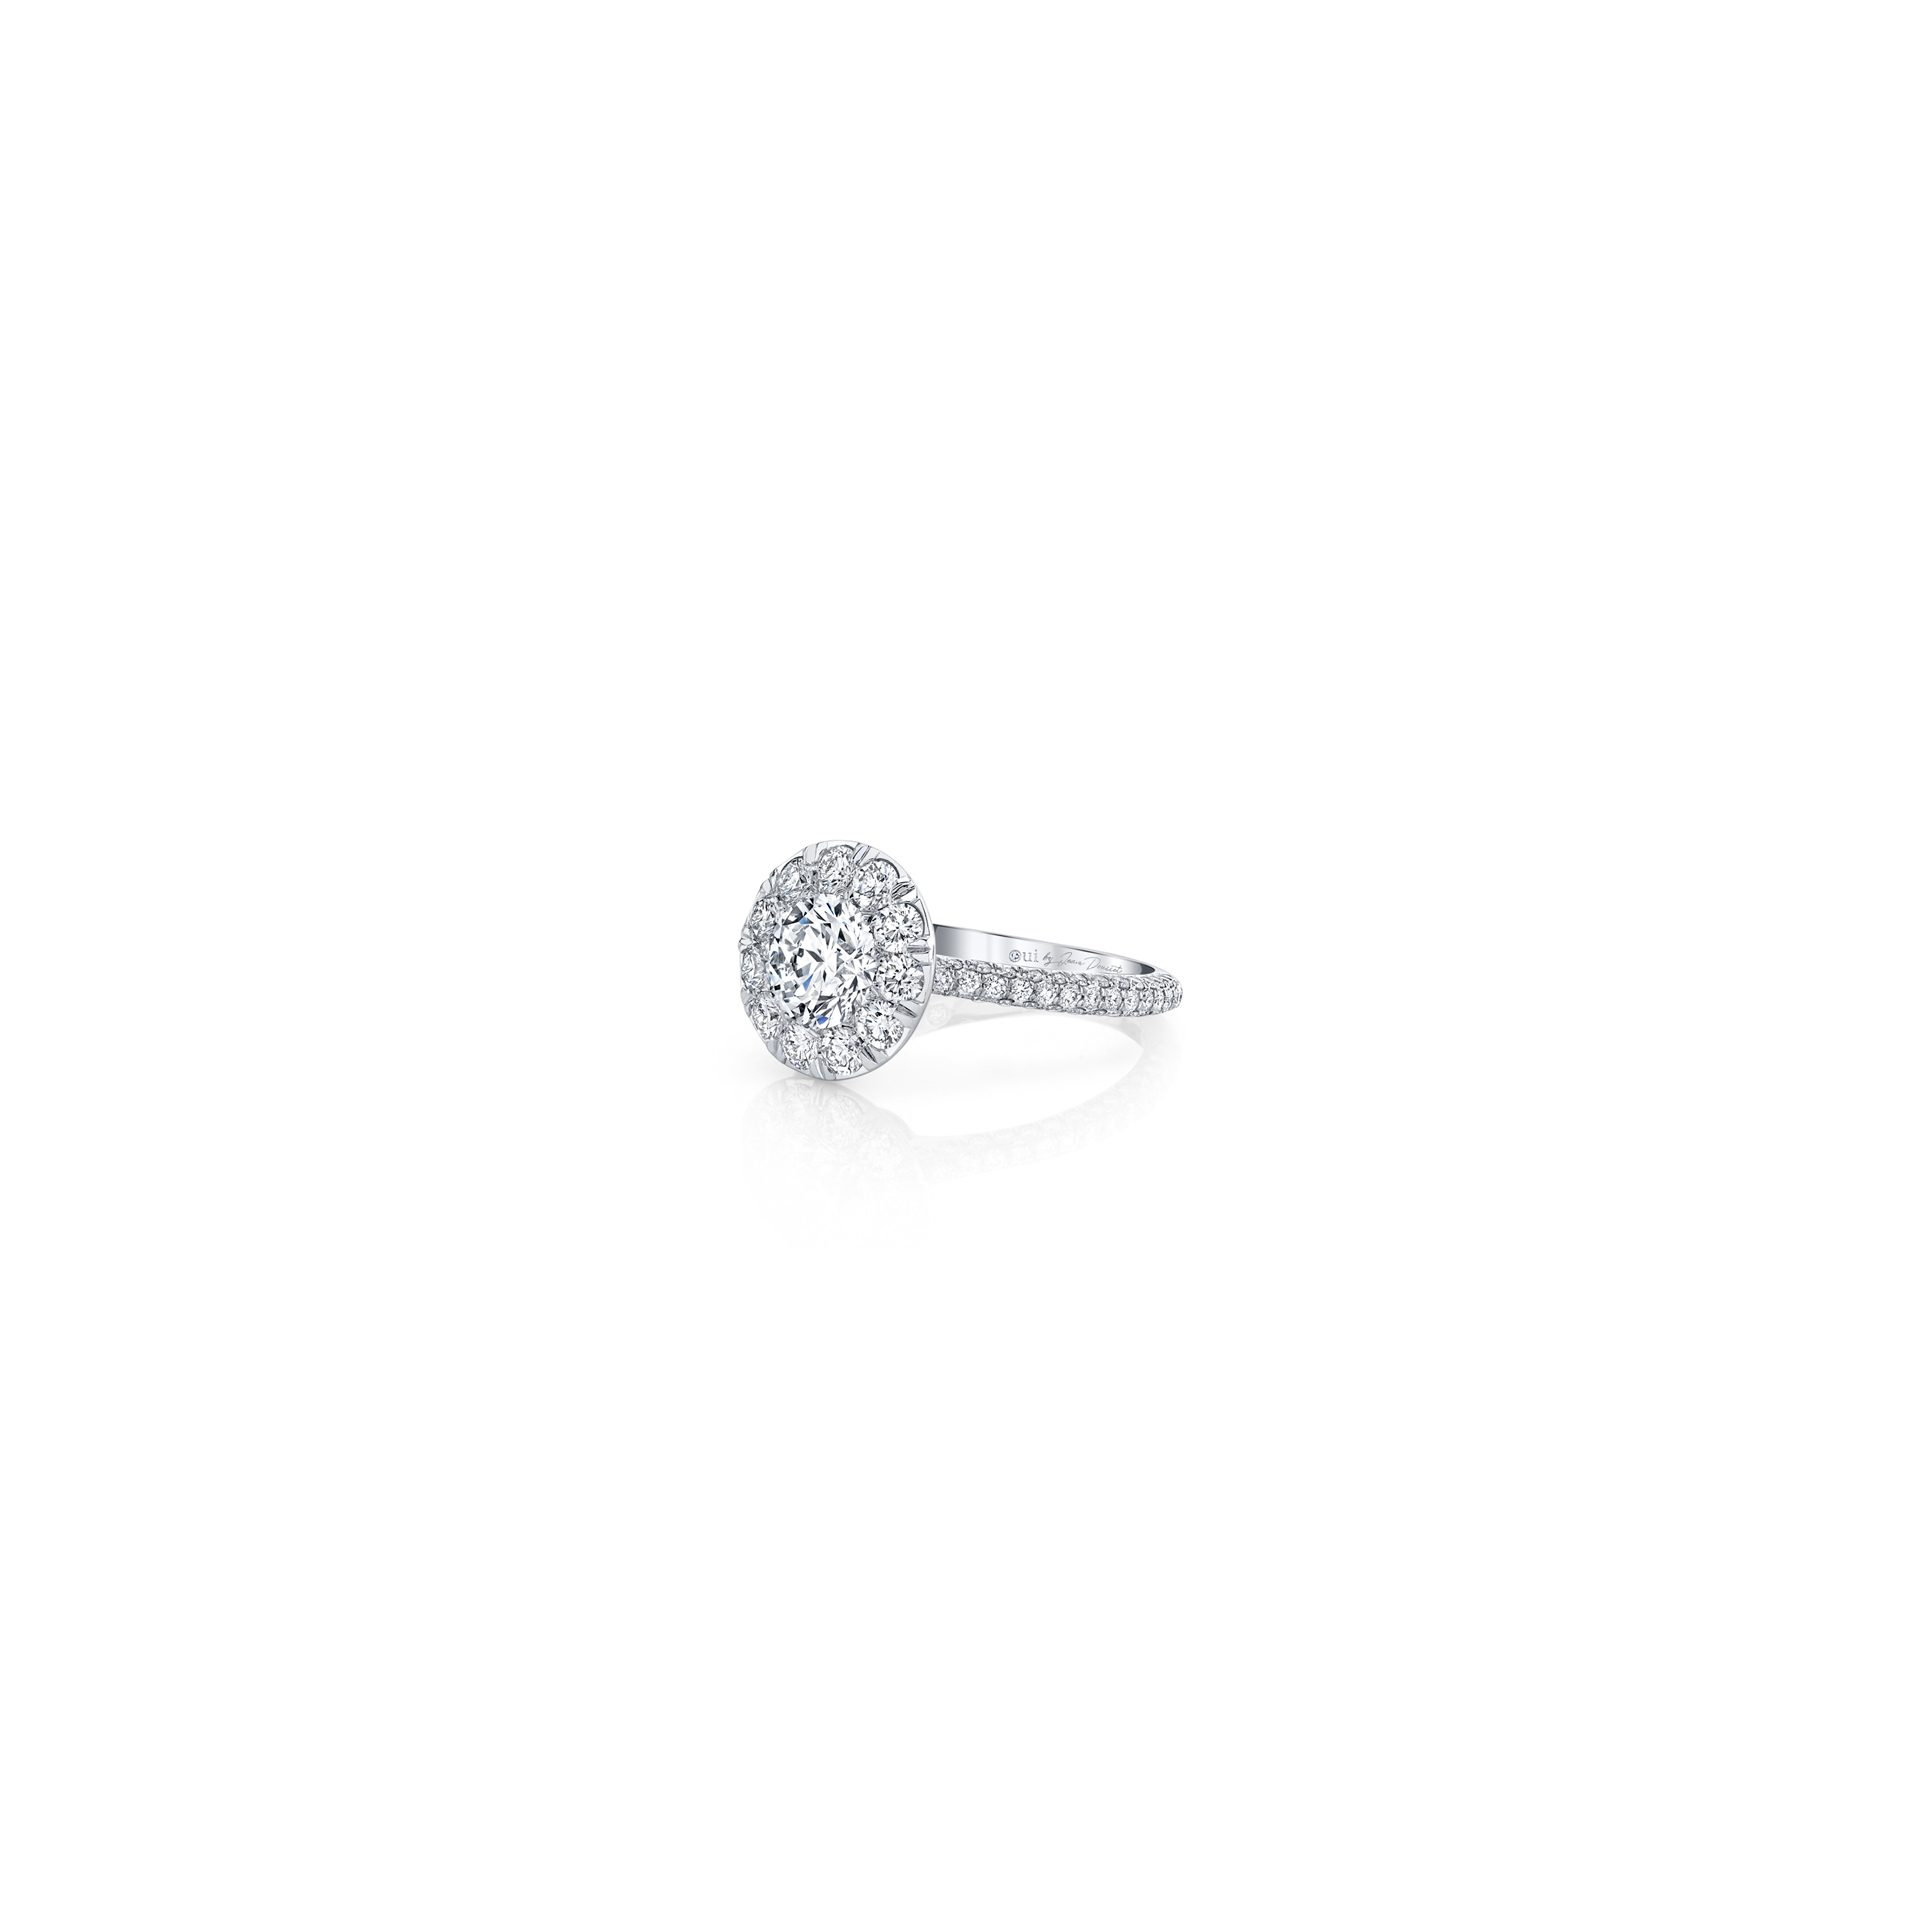 Jacqueline Round Brilliant Seamless Solitaire™ Engagement Ring with diamond pavé in 18k White Gold Side View by Oui by Jean Dousset